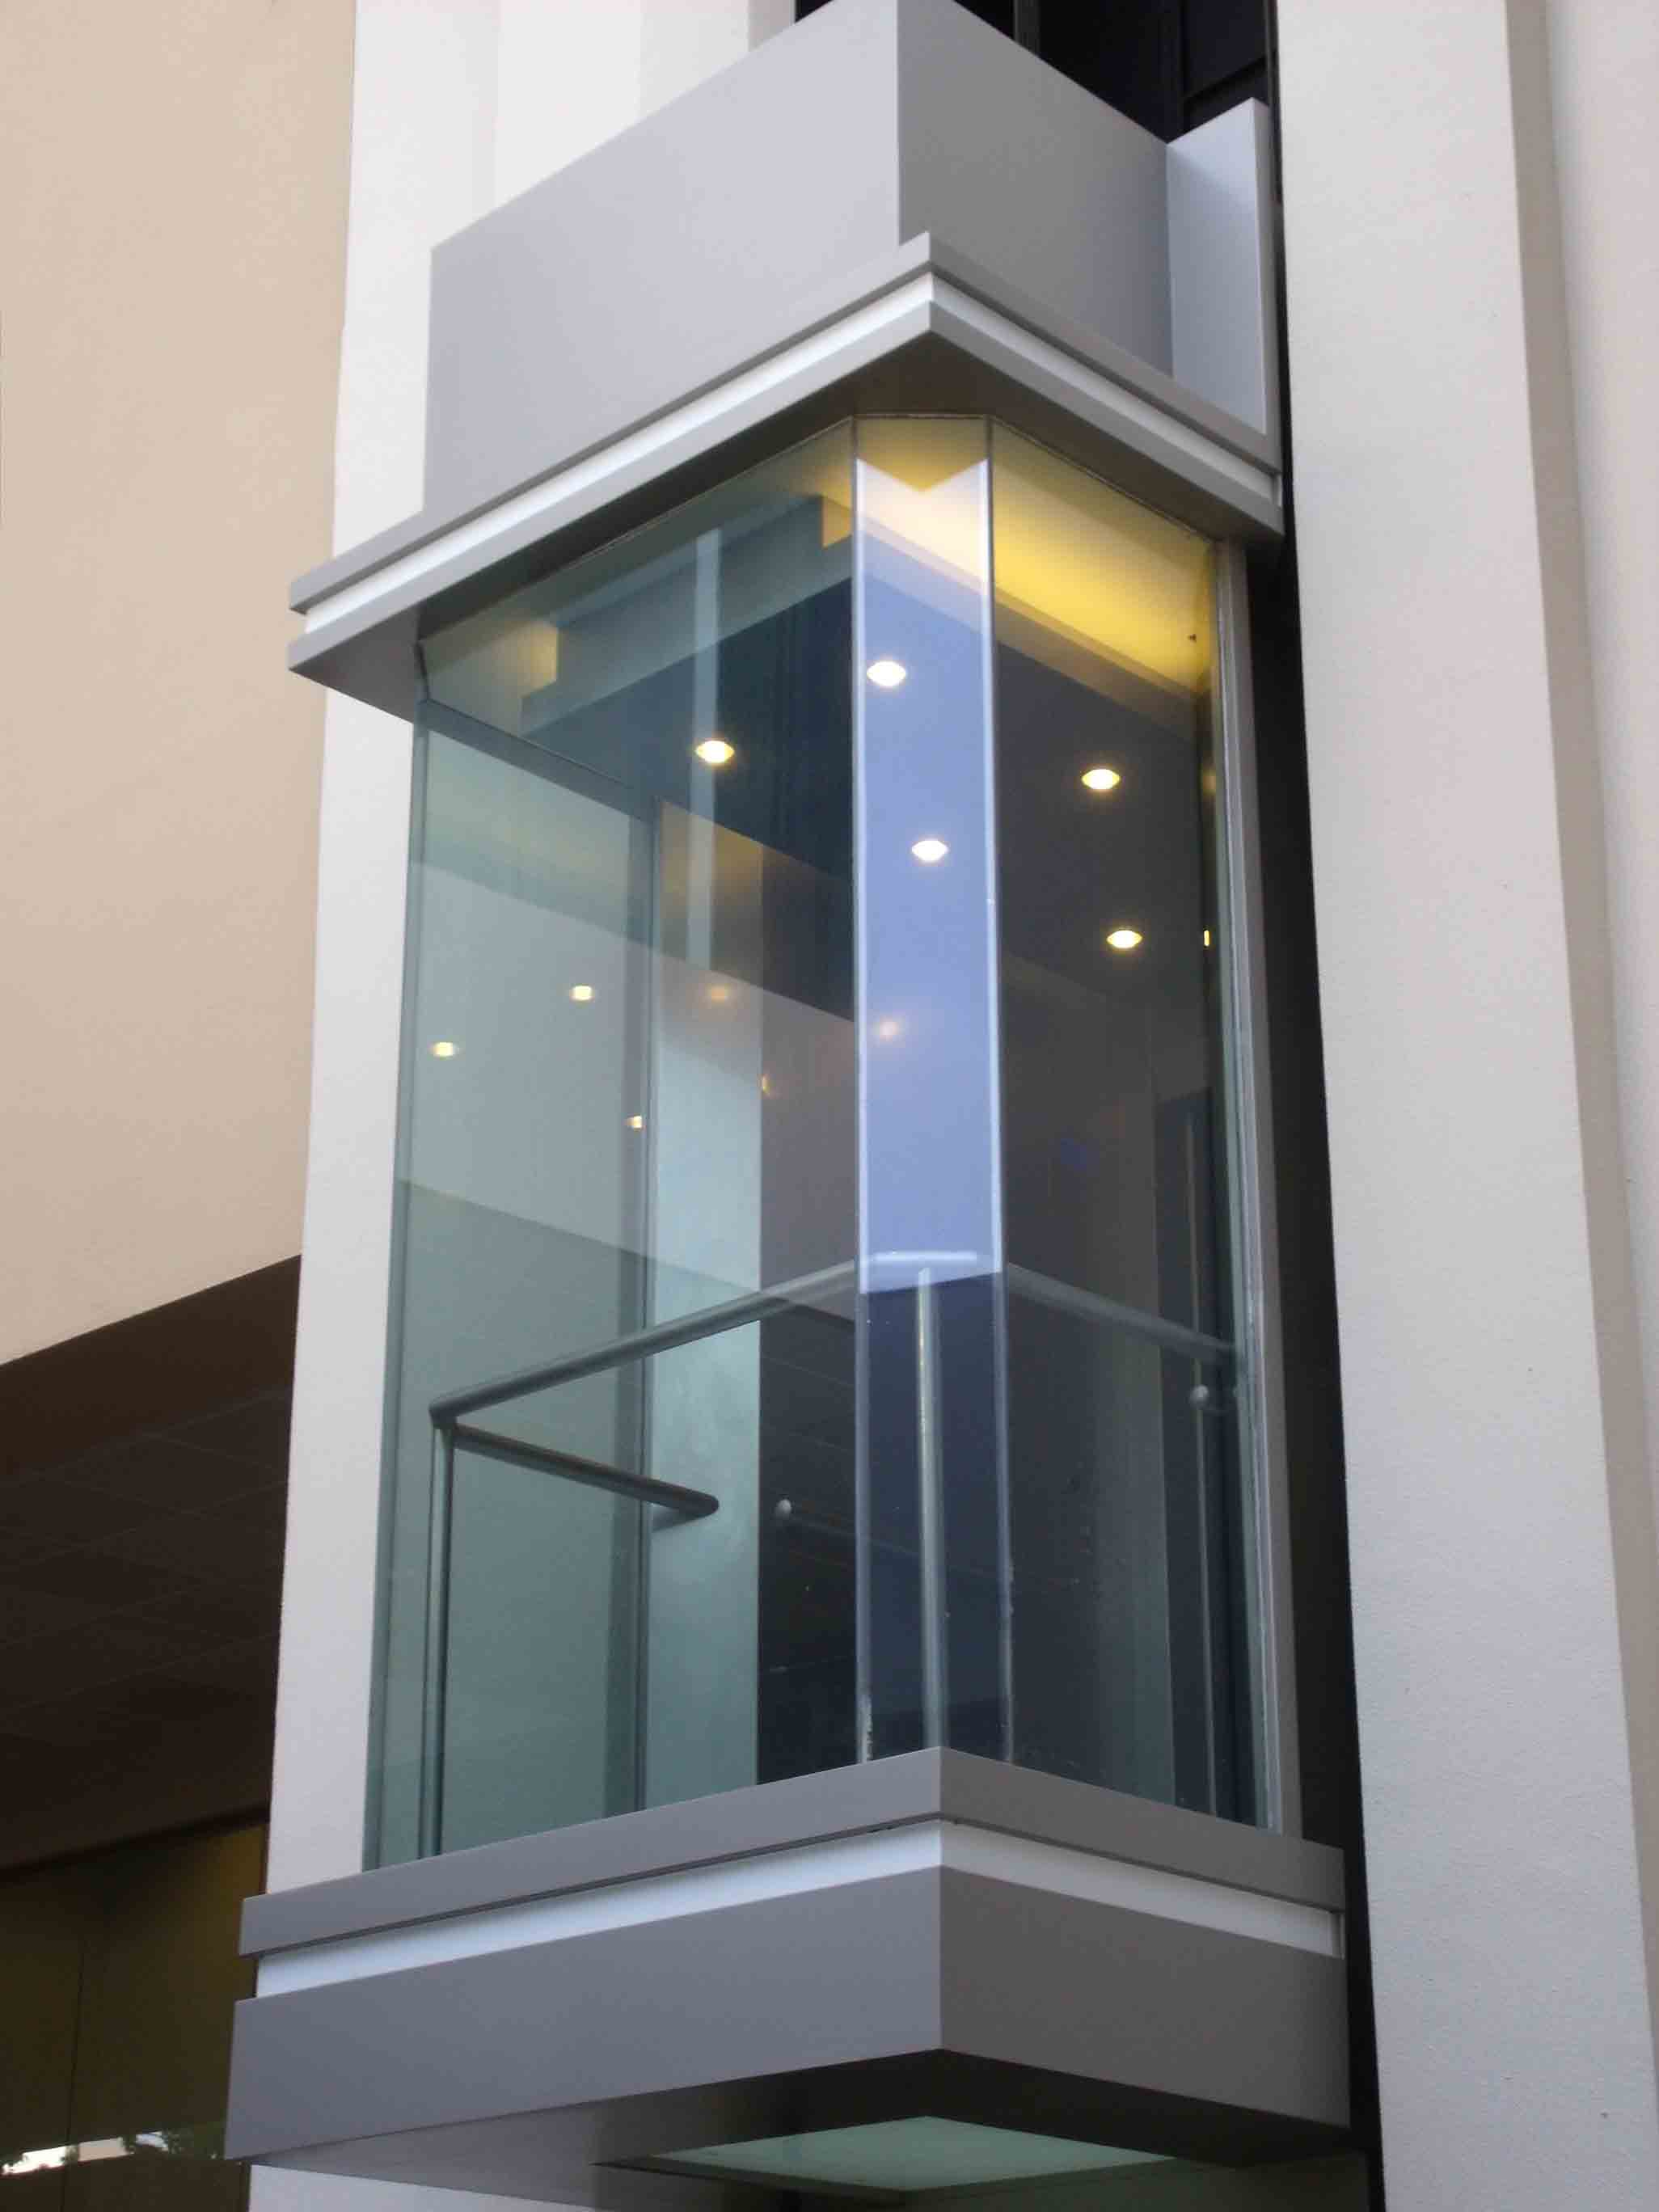 Home Elevators. Home Lifts. Residential Elevators. Residential Lifts. Residential Hydraulic Elevators. Residential Hydraulic Lifts. Hydraulic Home Elevators. Domus Elevators Lifts. Express Home Elevators. Hydraulic Home Lifts. Glass Elevators Lifts. Capsule Elevators Lifts. Bungalow Elevators Lifts.